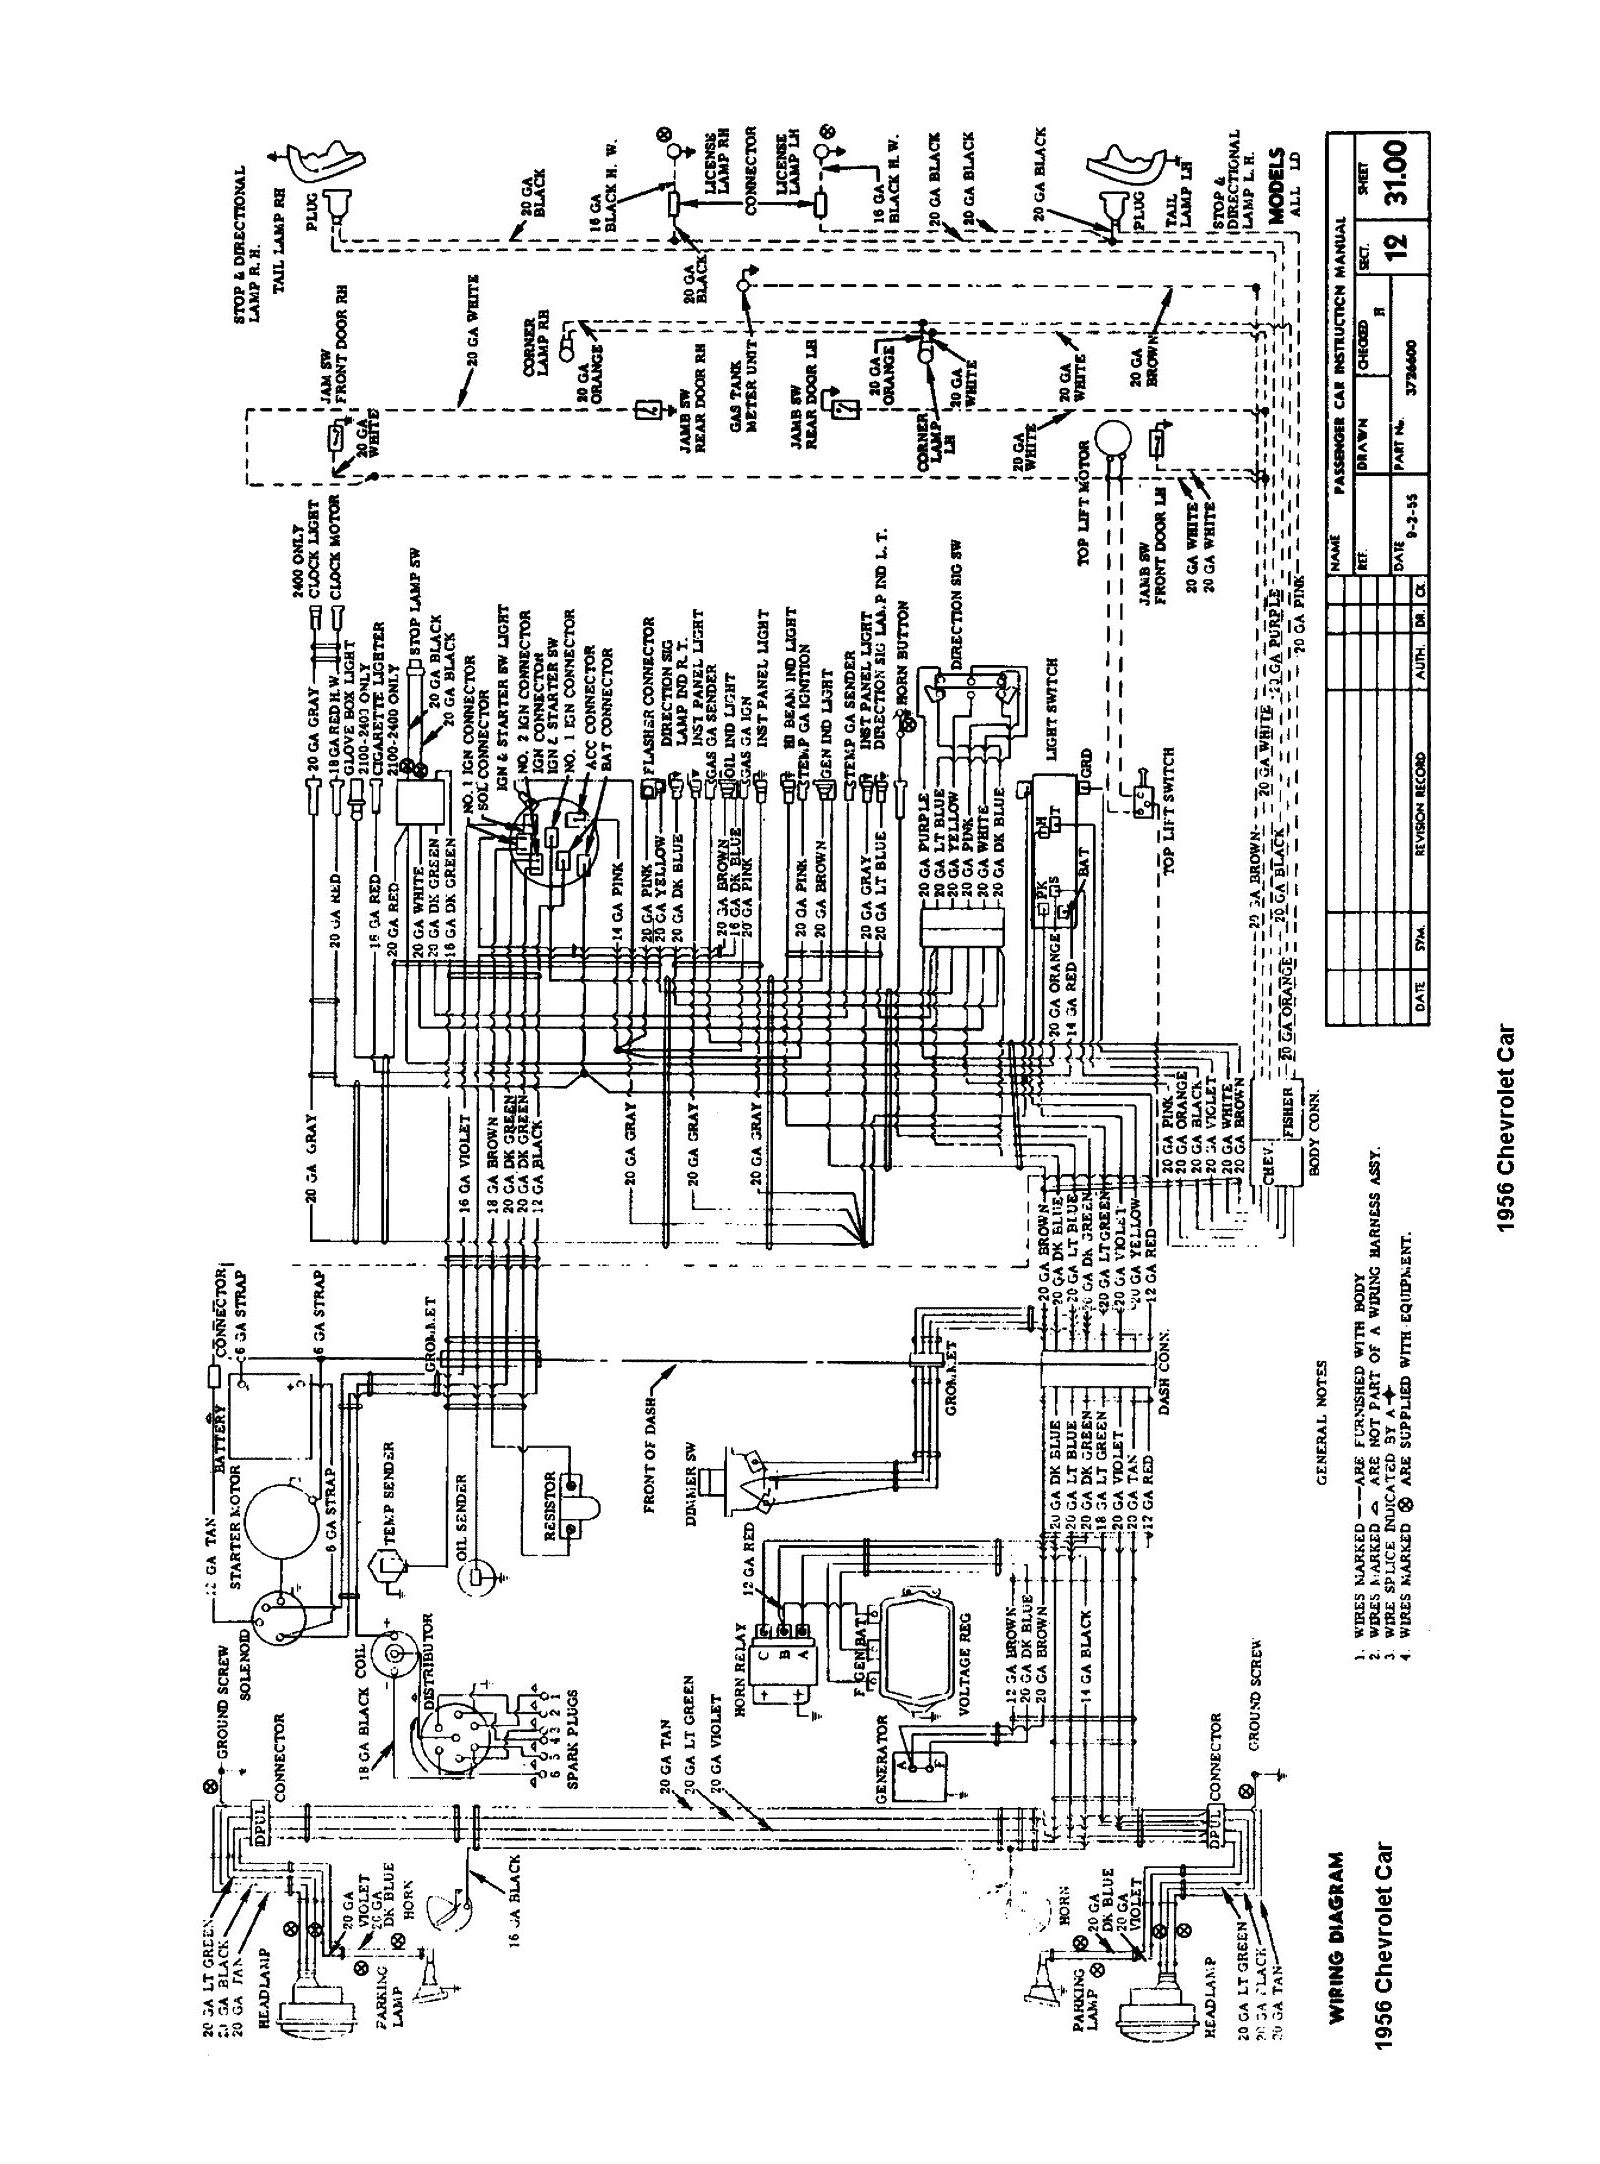 1955 1959 Chevy Truck Wiring Diagram Autos Post